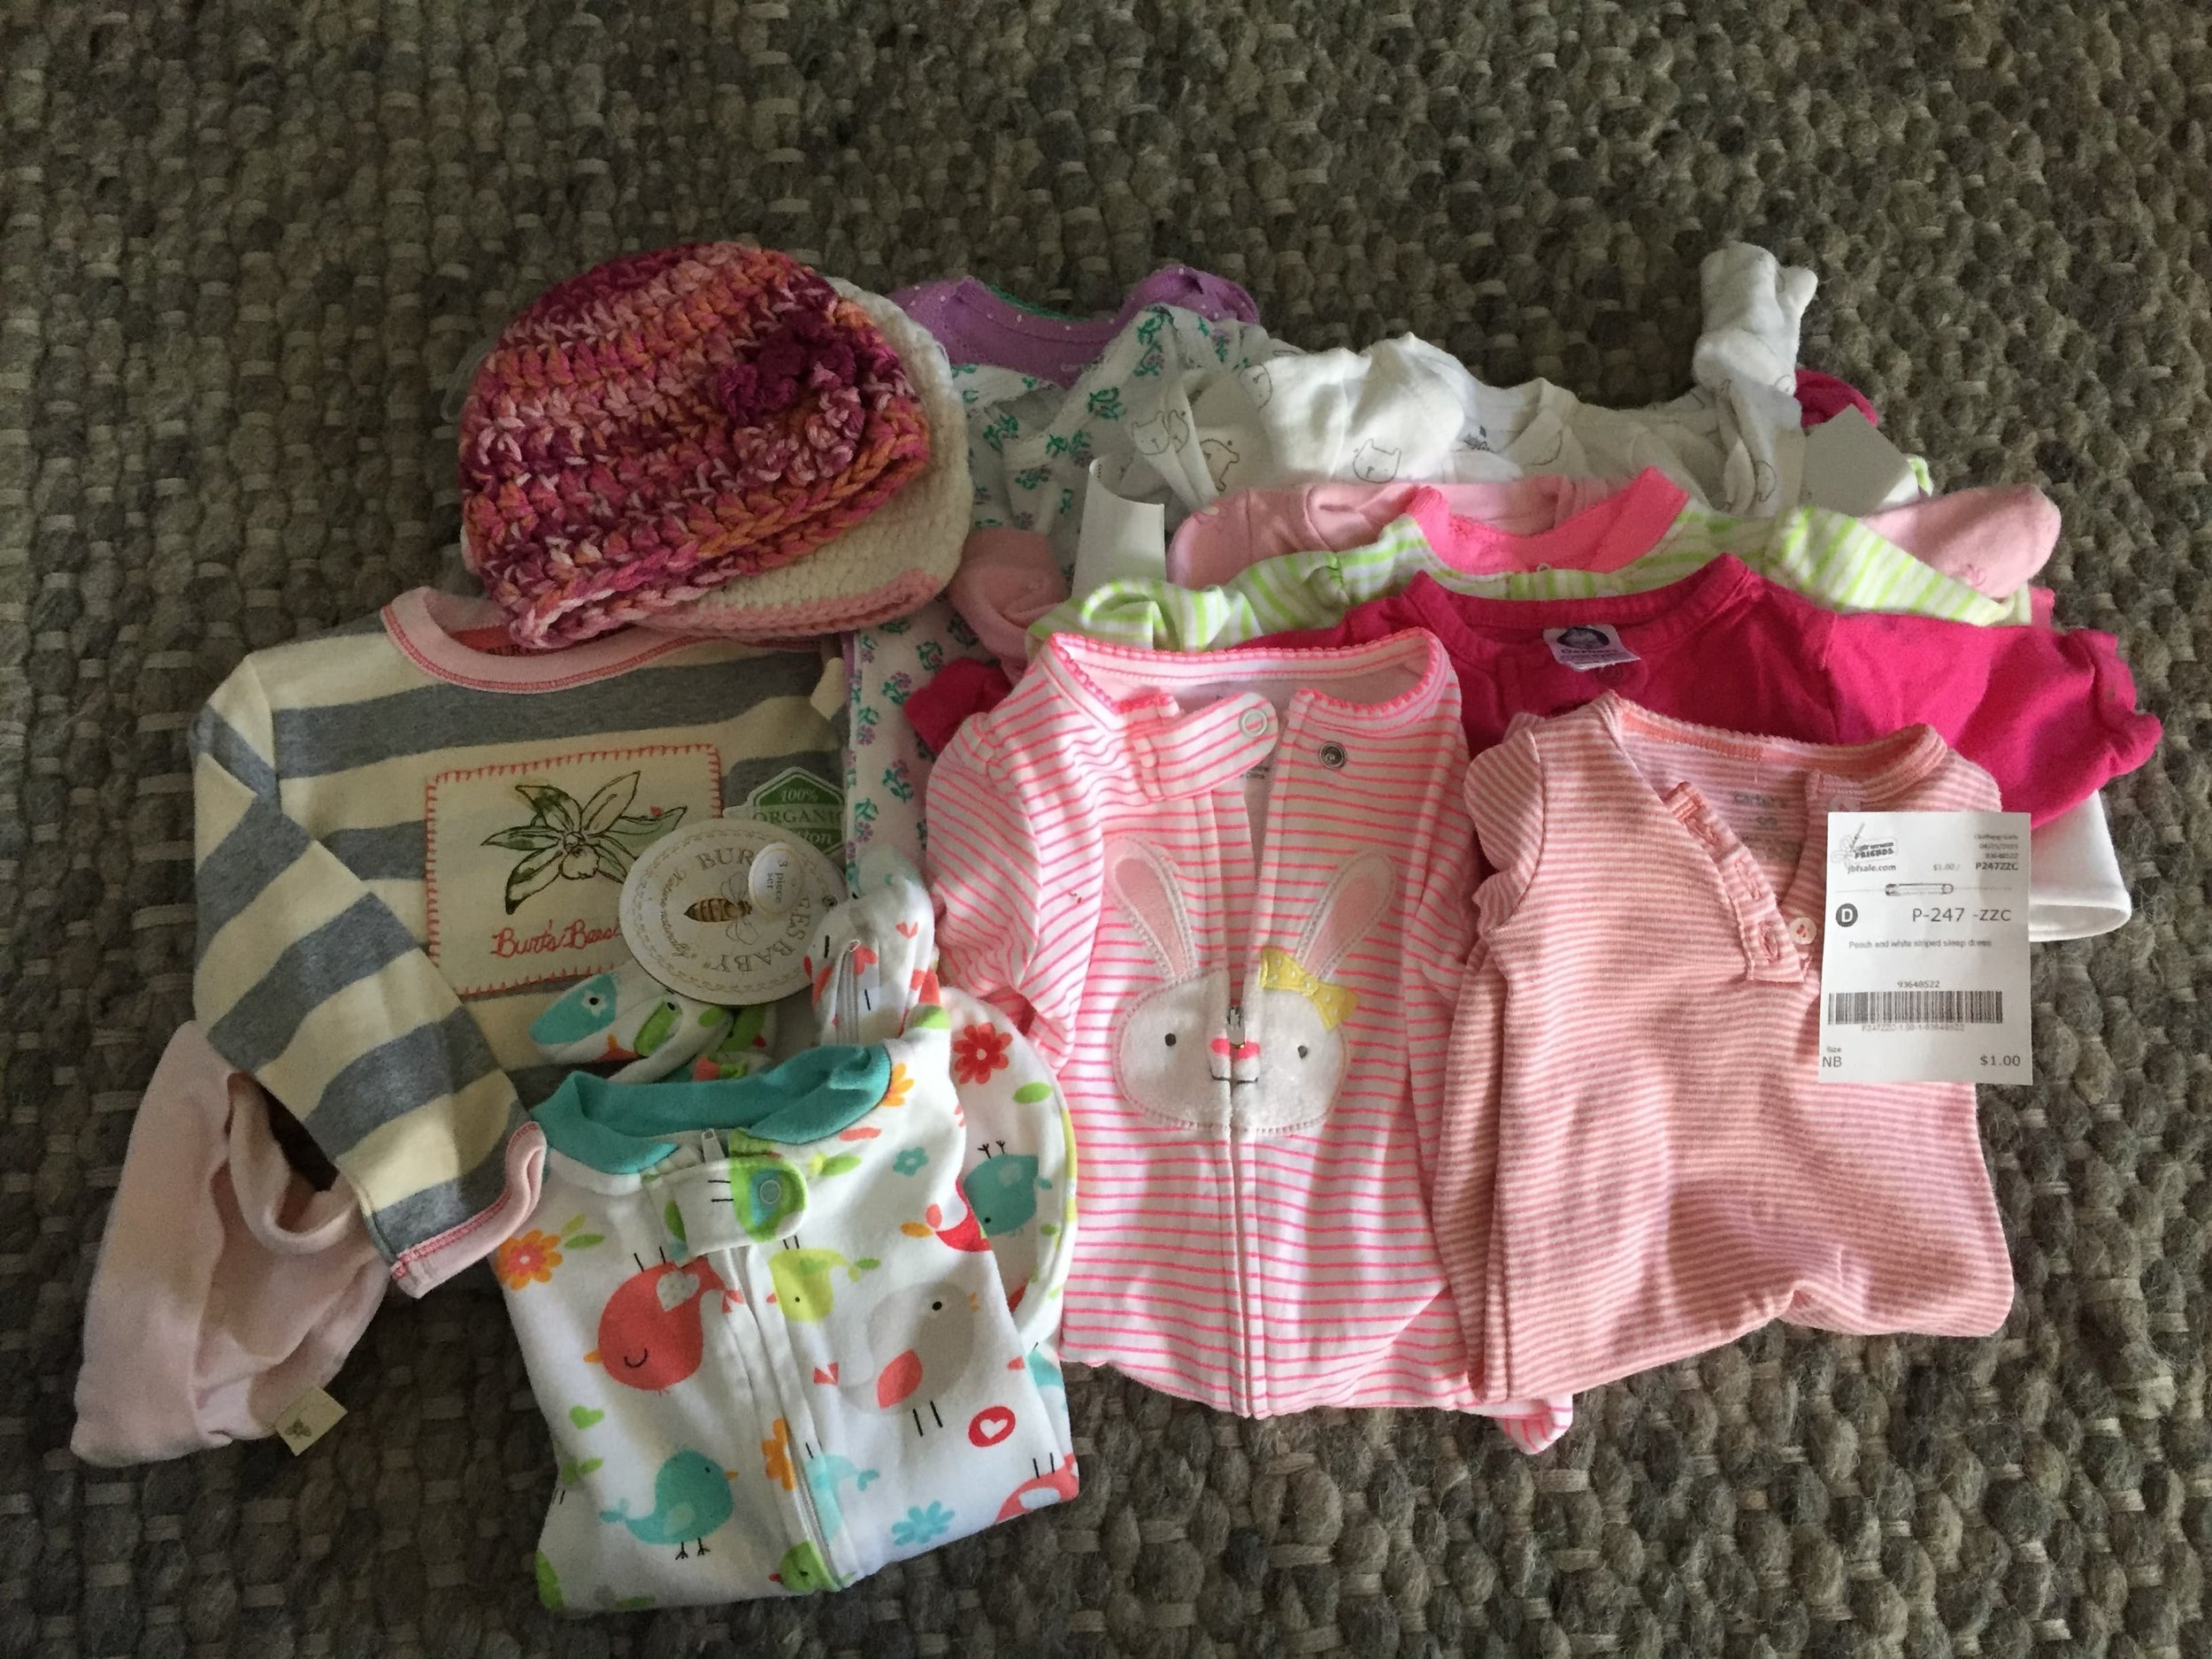 Cute baby clothes found at the Just Between Friends Sale.